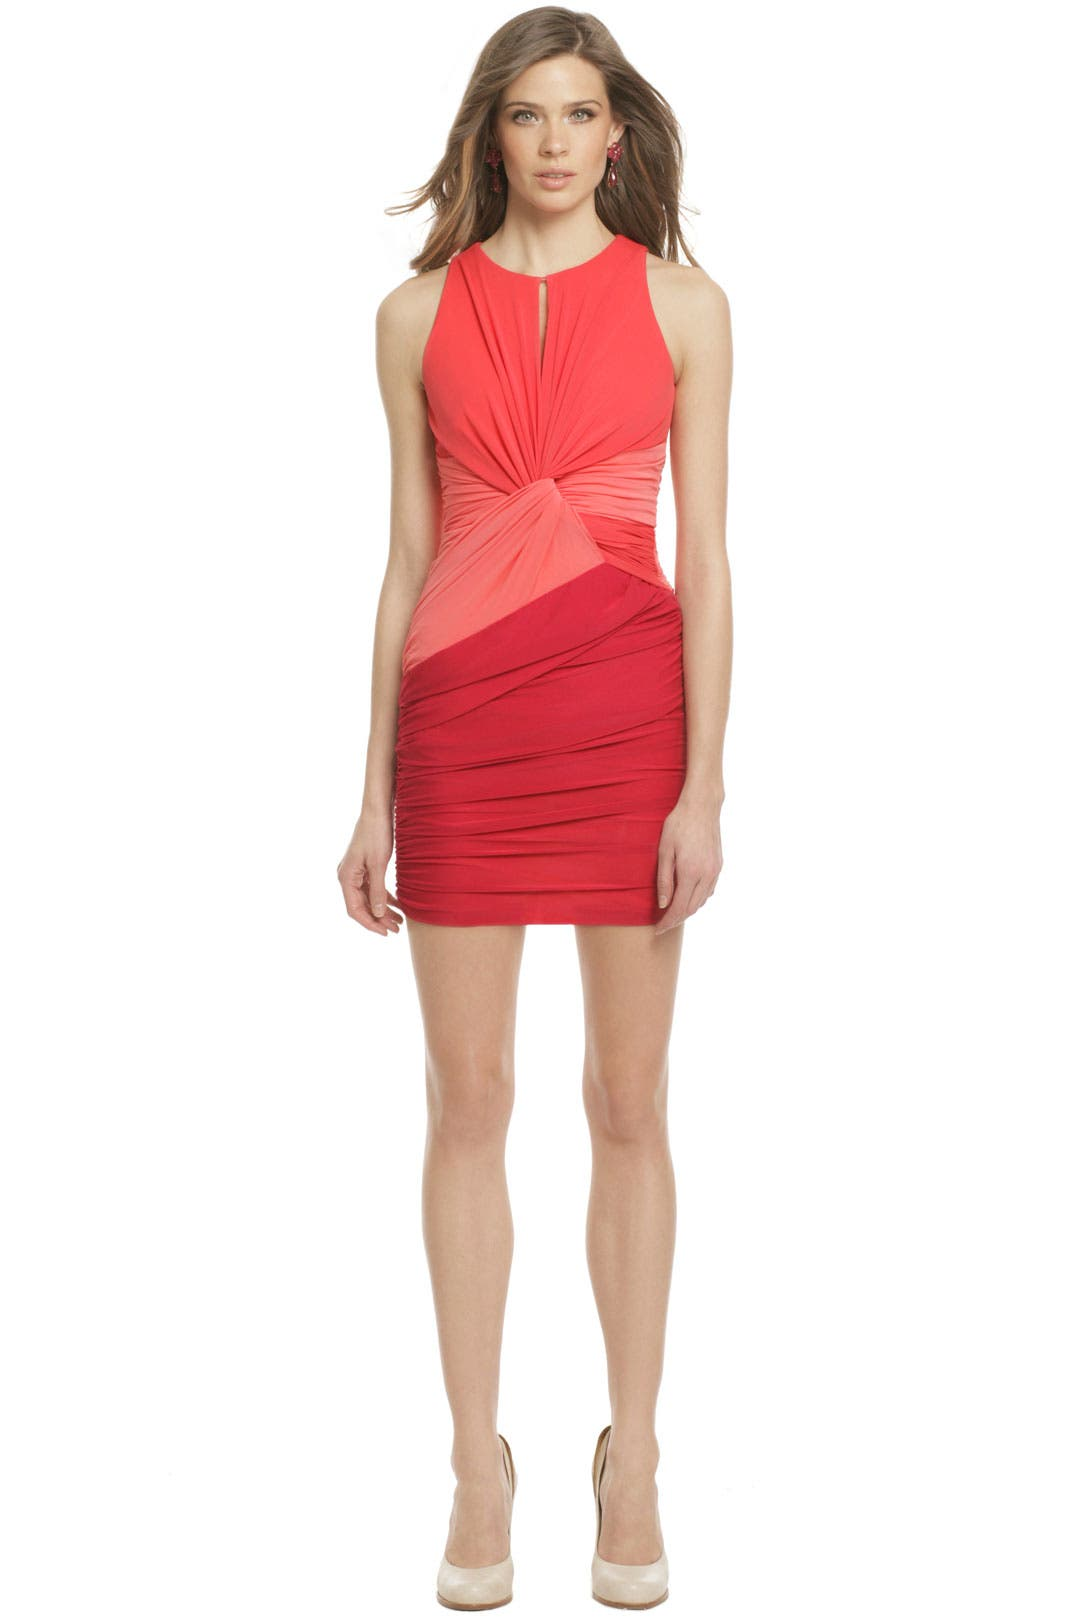 Mai Tai Dress by Halston Heritage